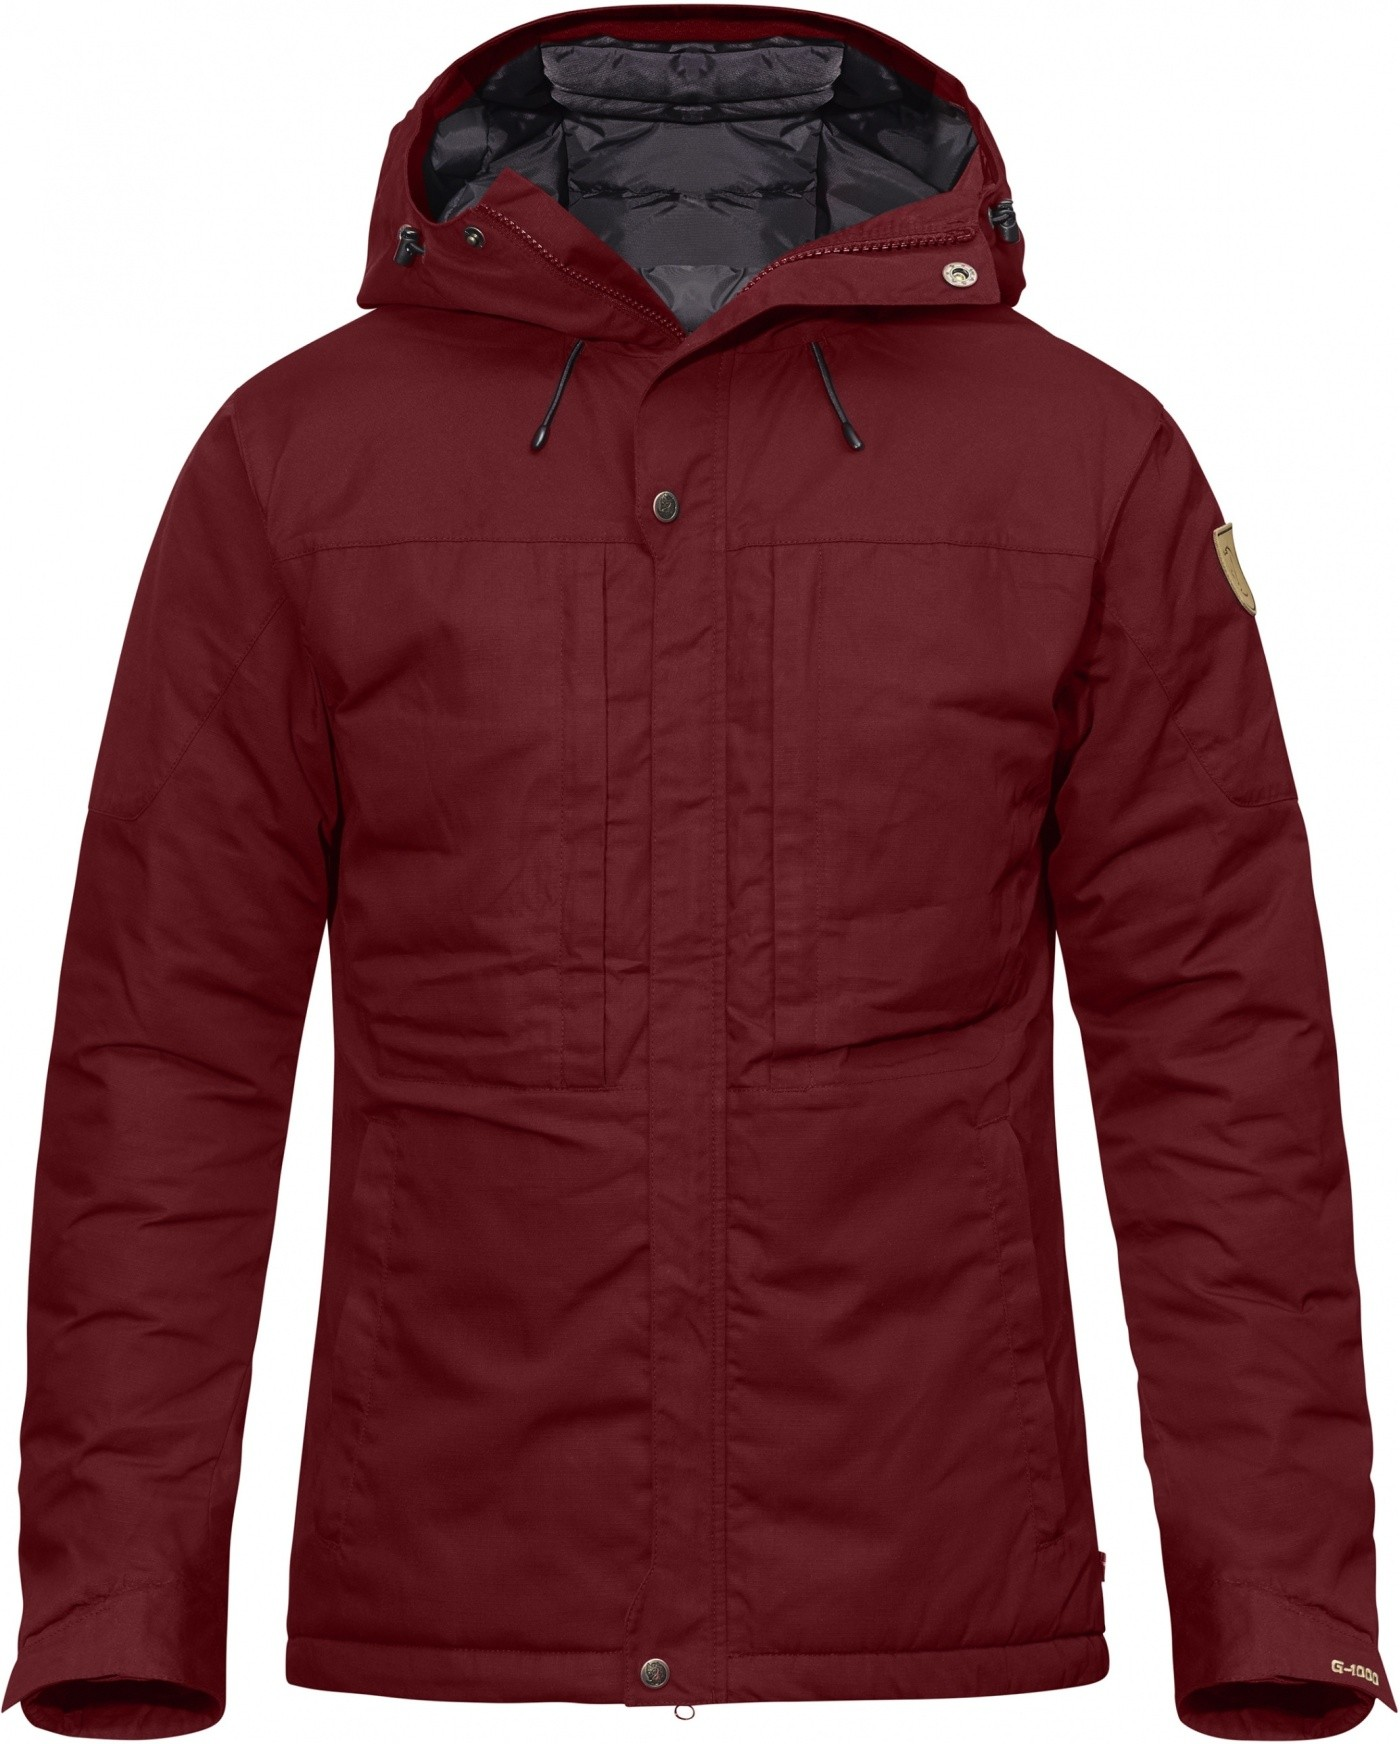 FjallRaven Skogsö Padded Jacket